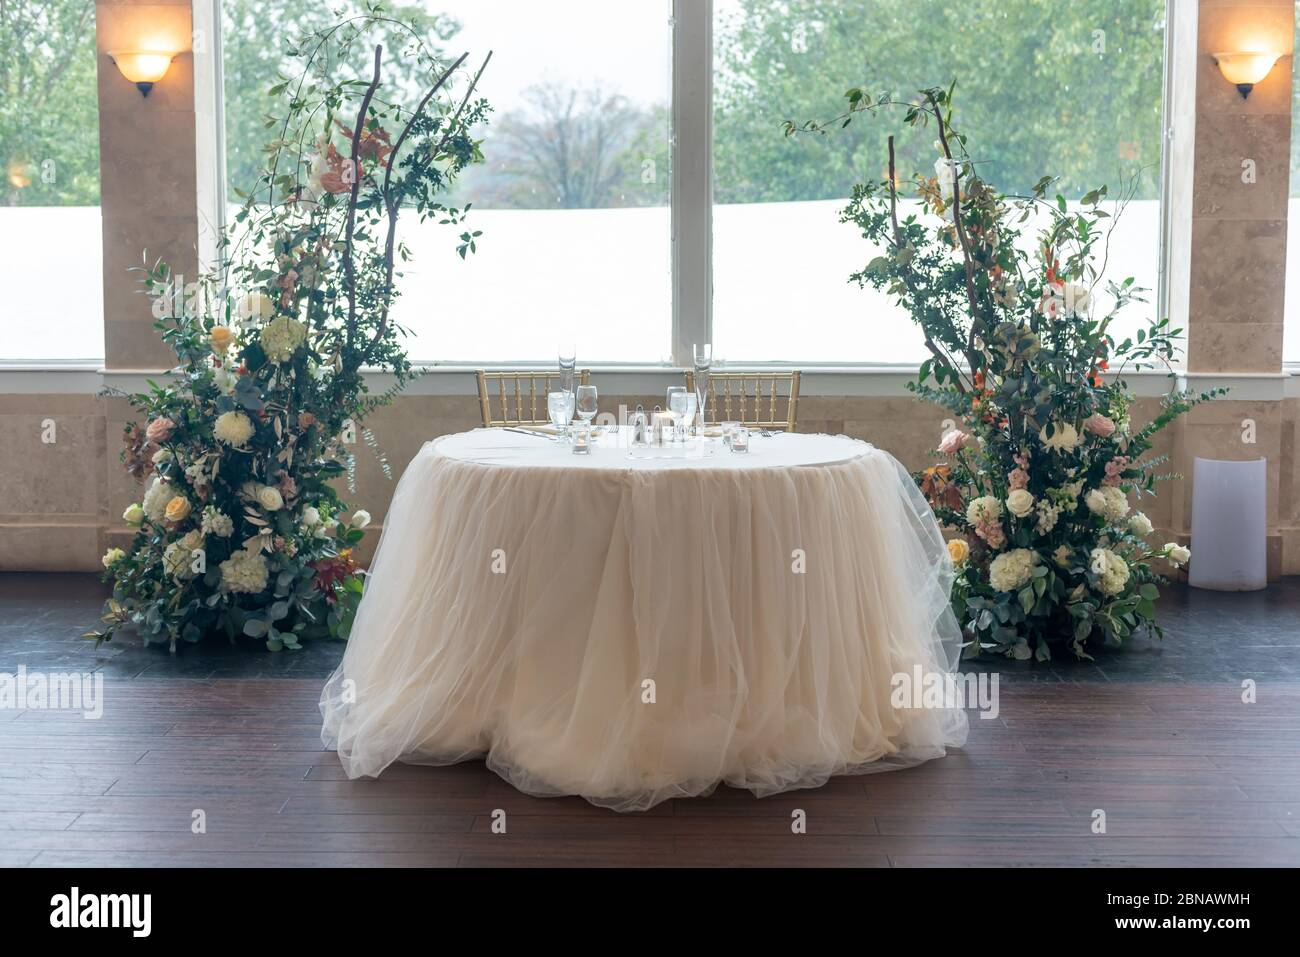 A small white table for two personas and beautiful floral wedding decorations Stock Photo